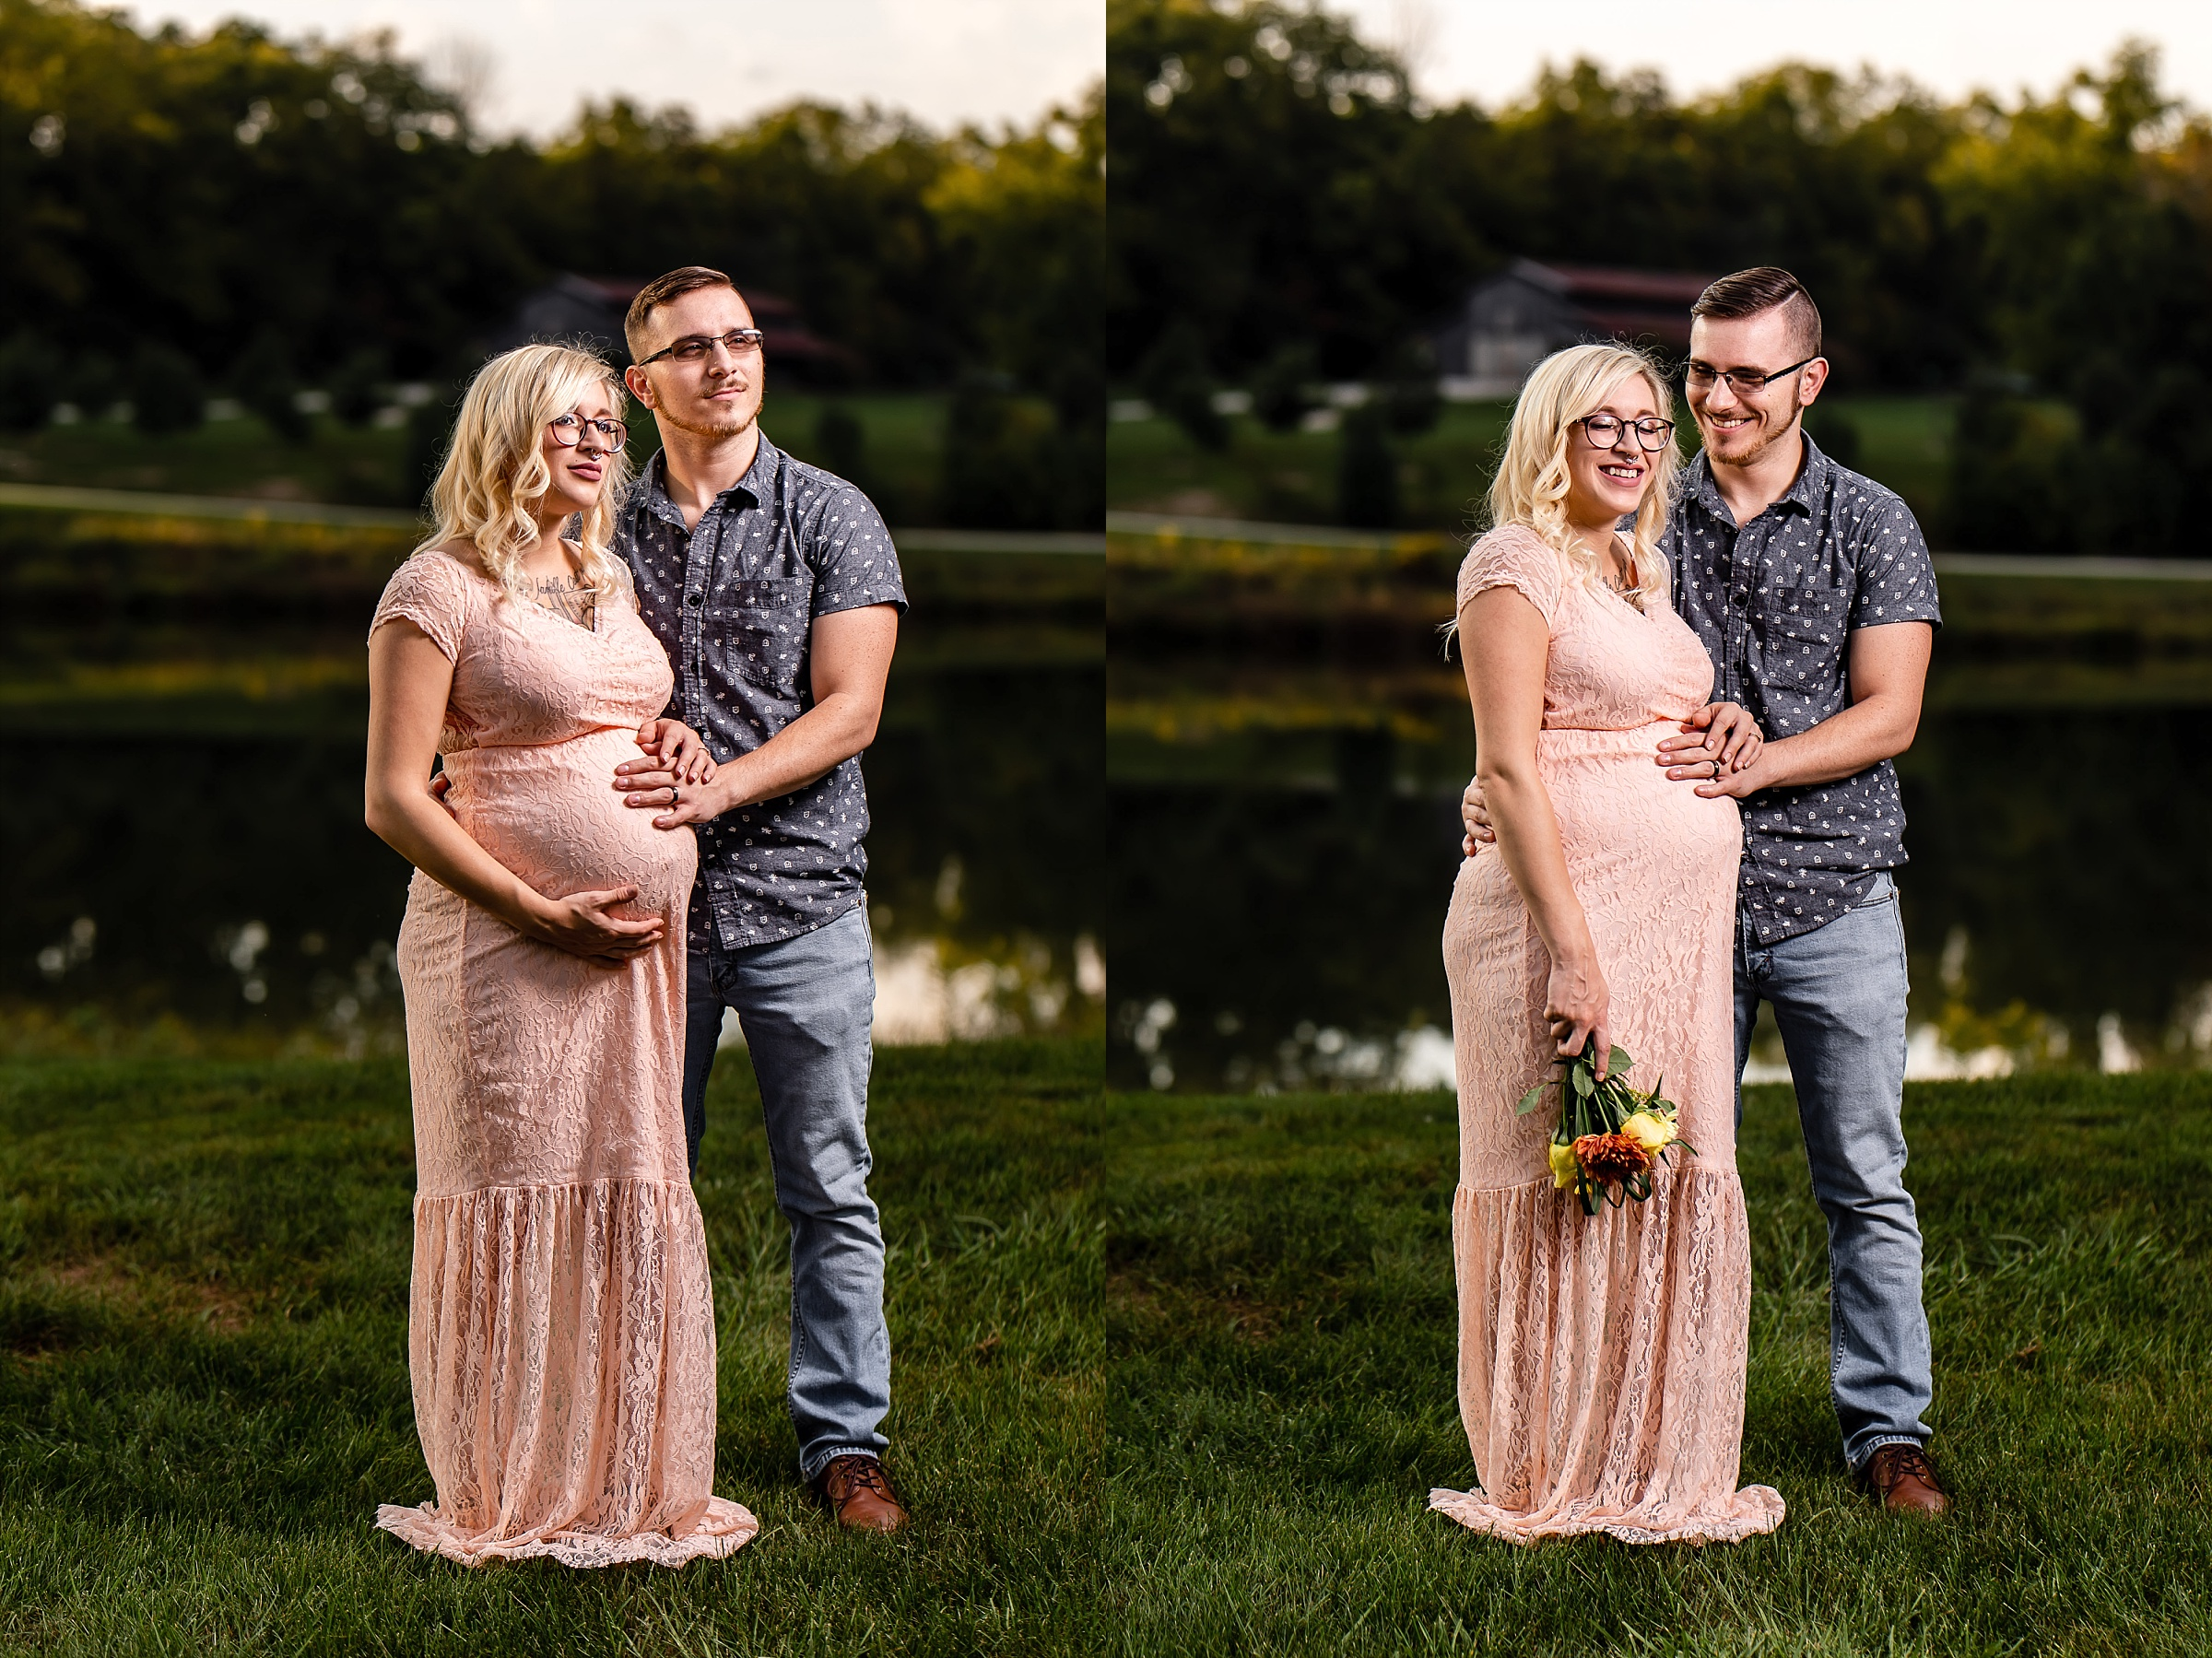 Indianapolis maternity photography avon town hall park (2).jpg